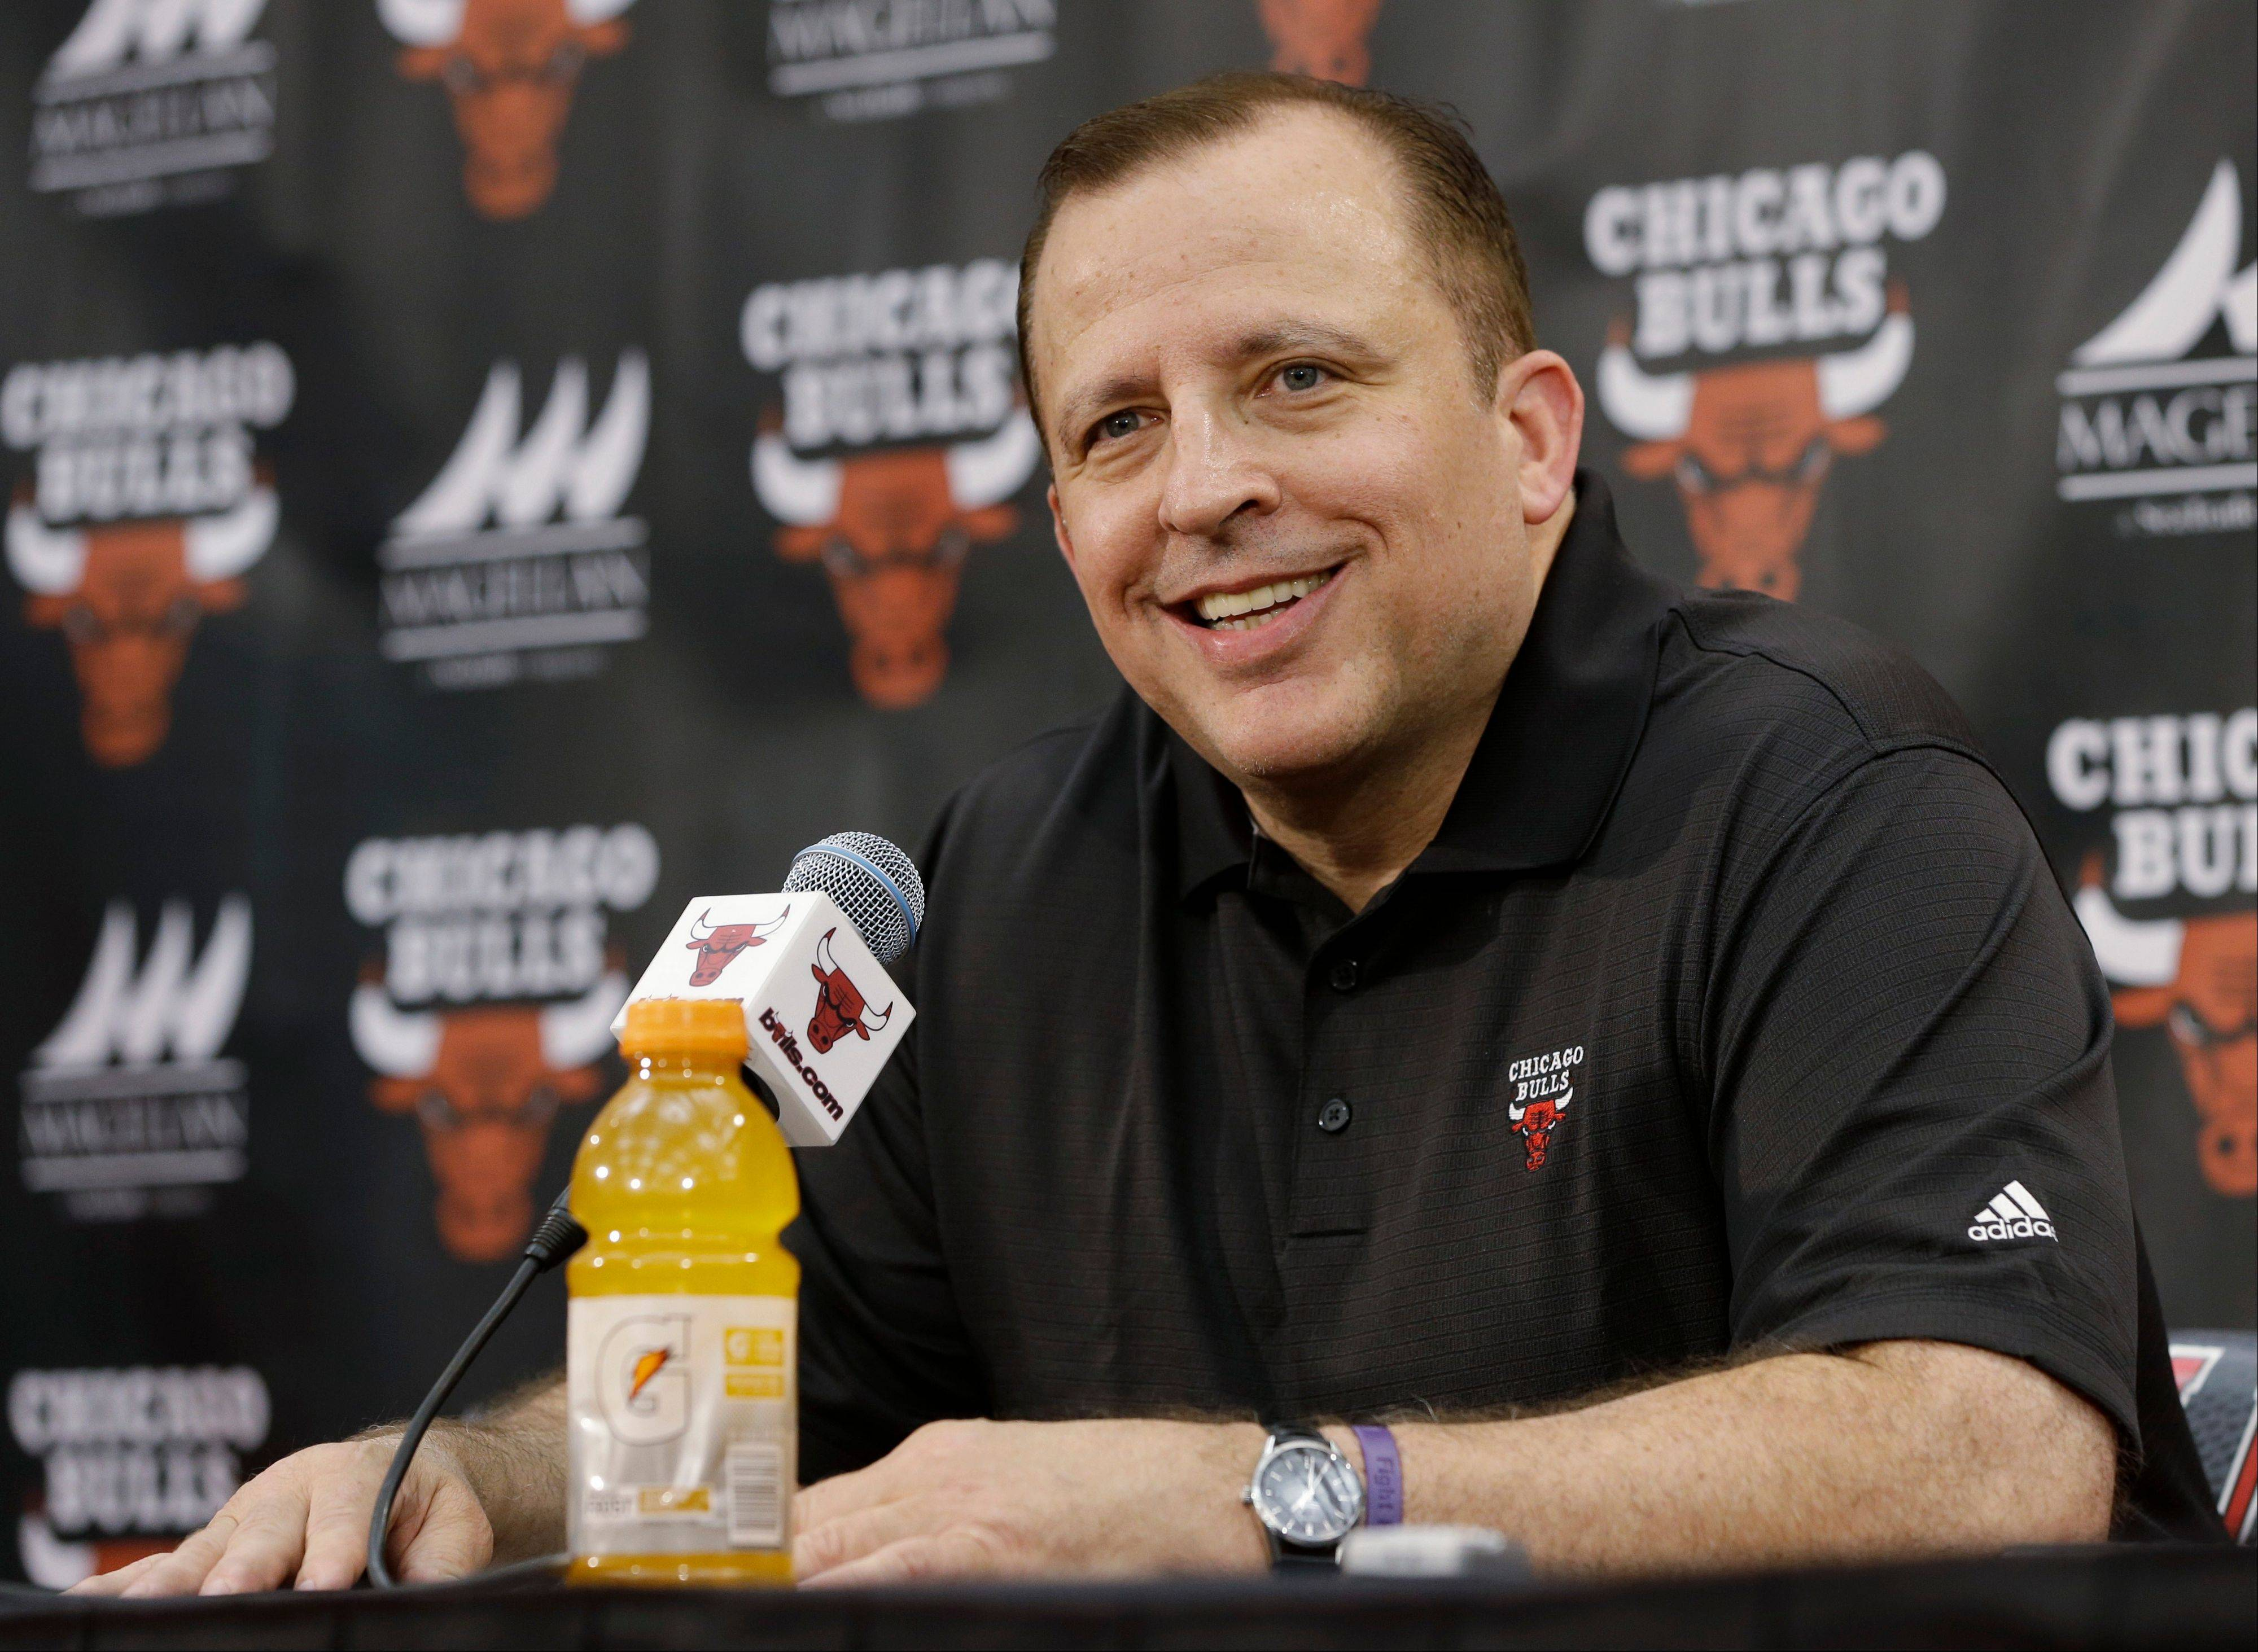 Bulls coach Tom Thibodeau was smiling here at Friday�s news conference, but he had harsh words later for critics who believed Derrick Rose should have played in the playoffs.